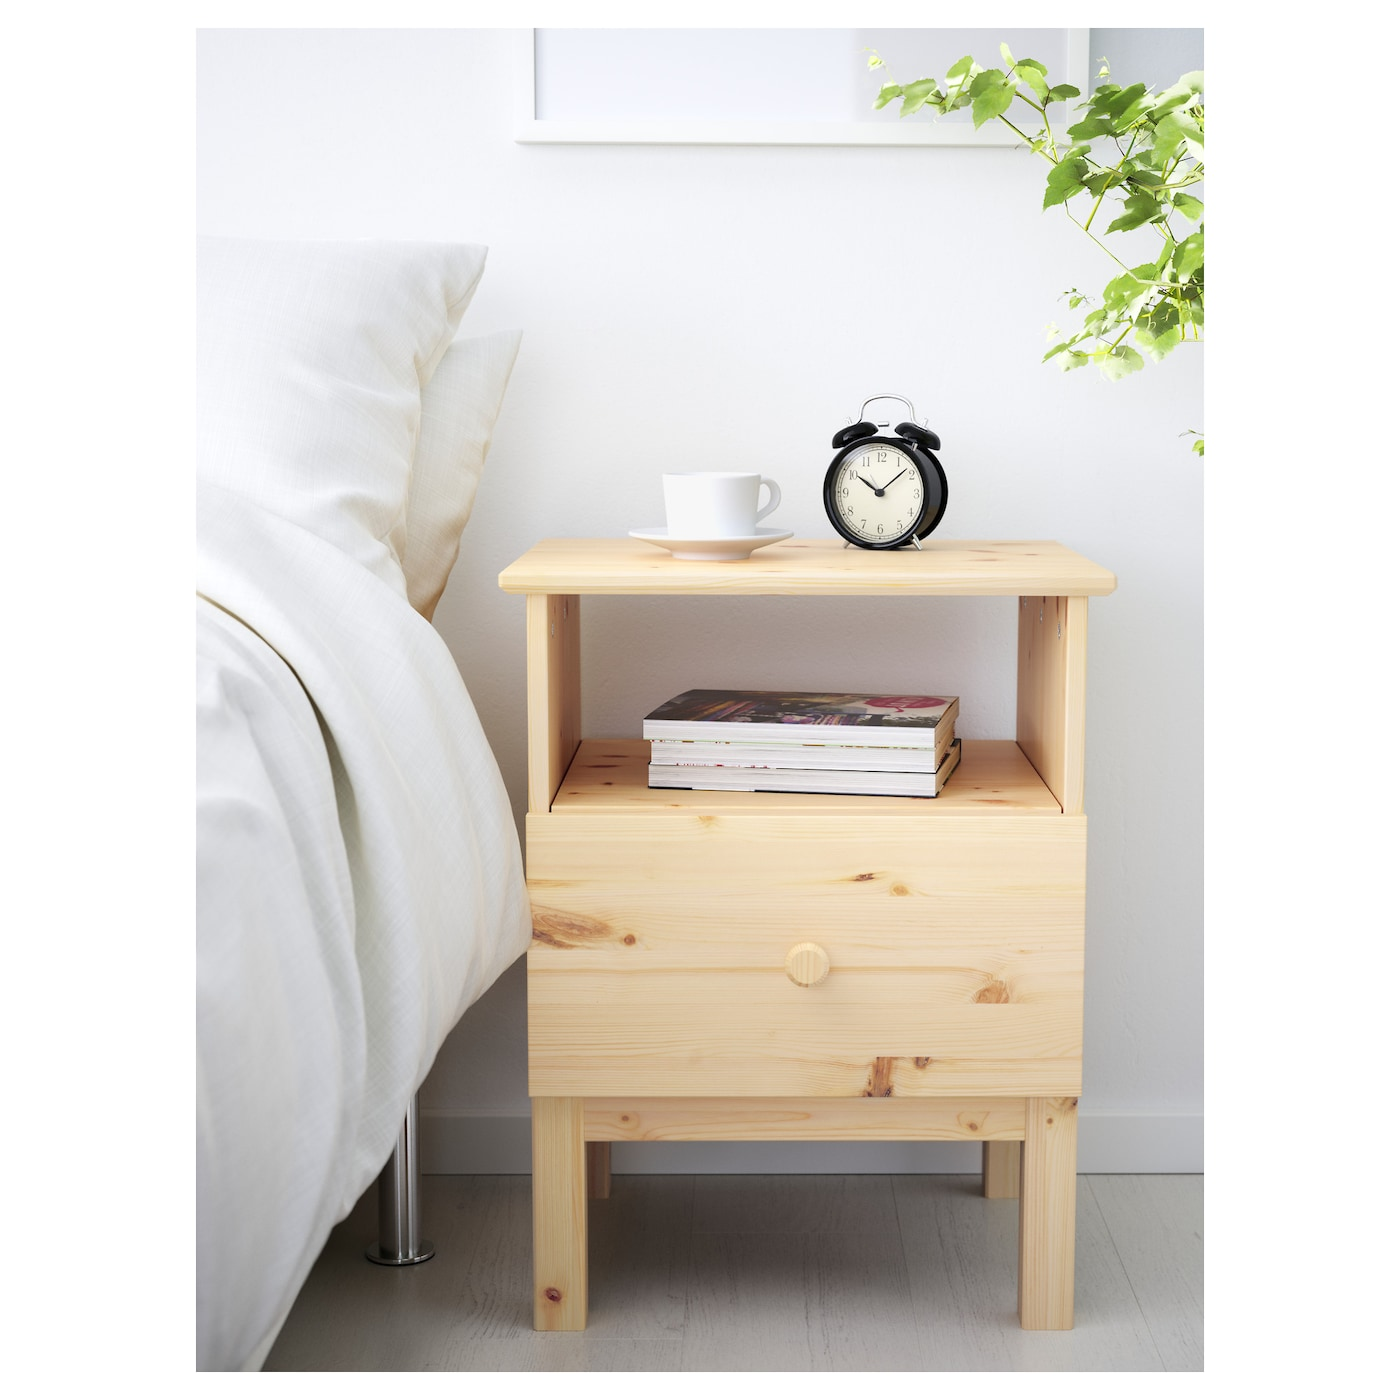 IKEA TARVA bedside table Made of solid wood, which is a hardwearing and  warm natural